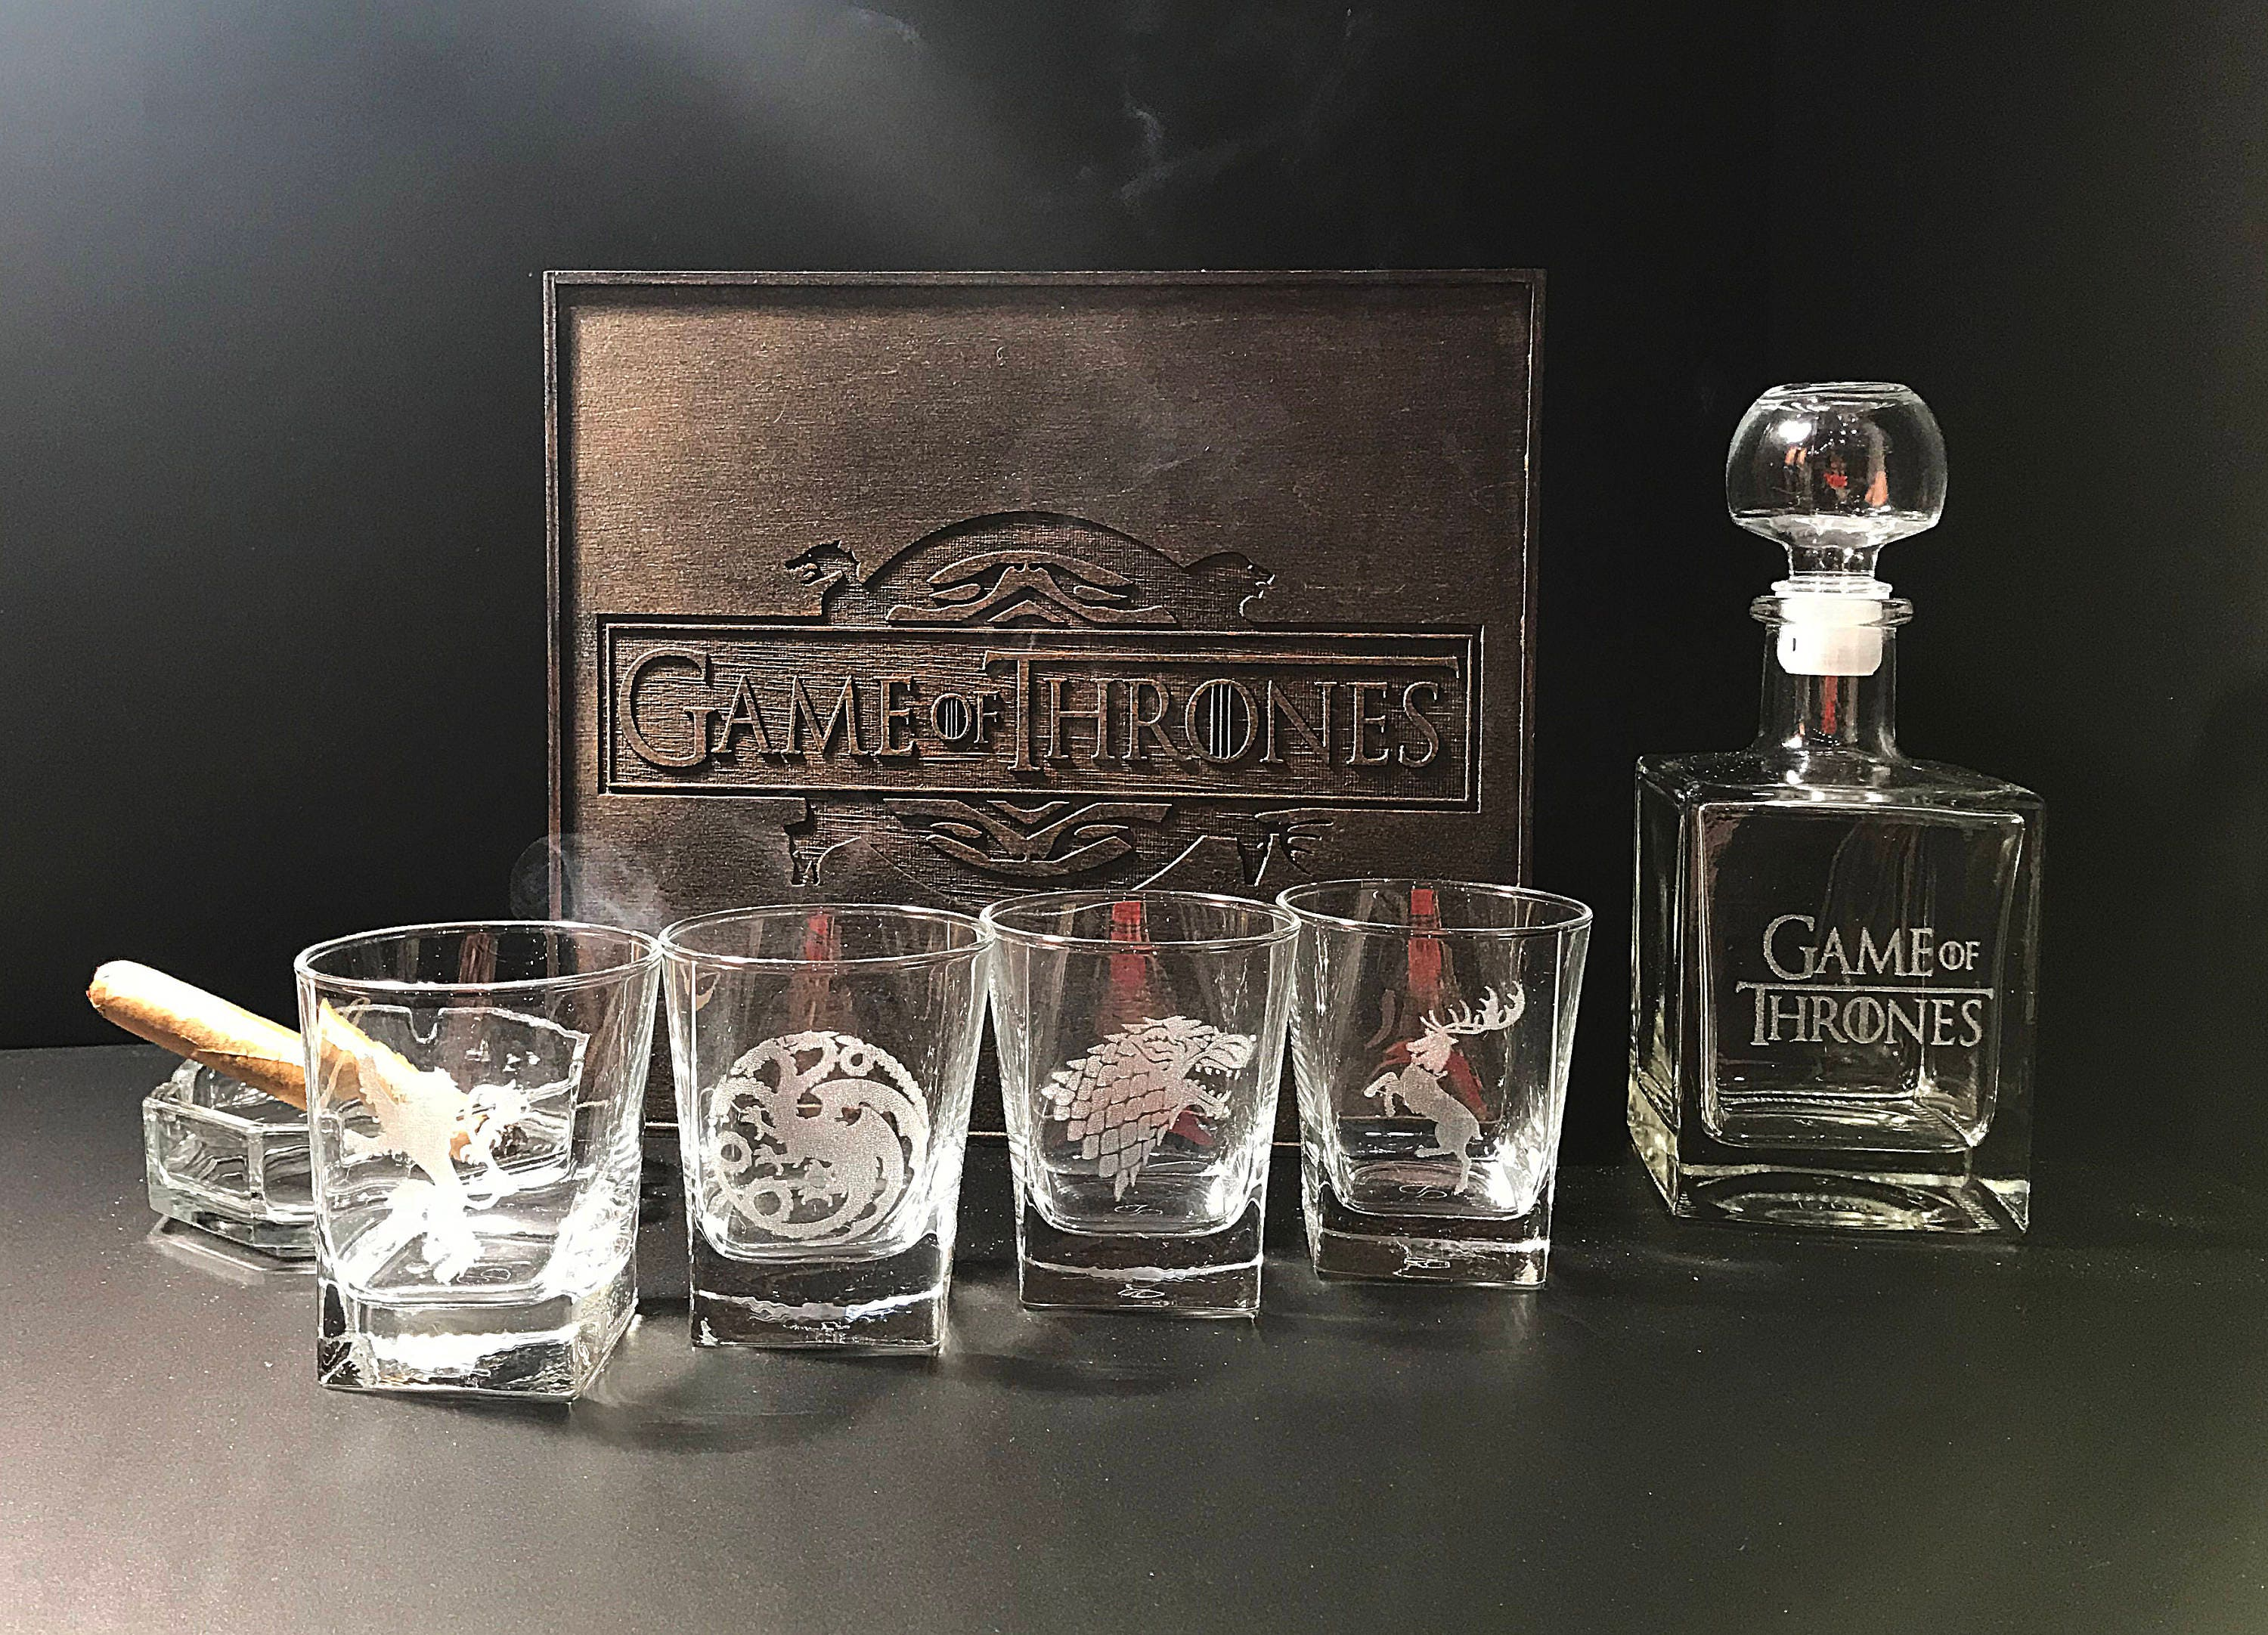 Game of thrones gift whiskey decanter set personalized for Game of thrones gifts for men